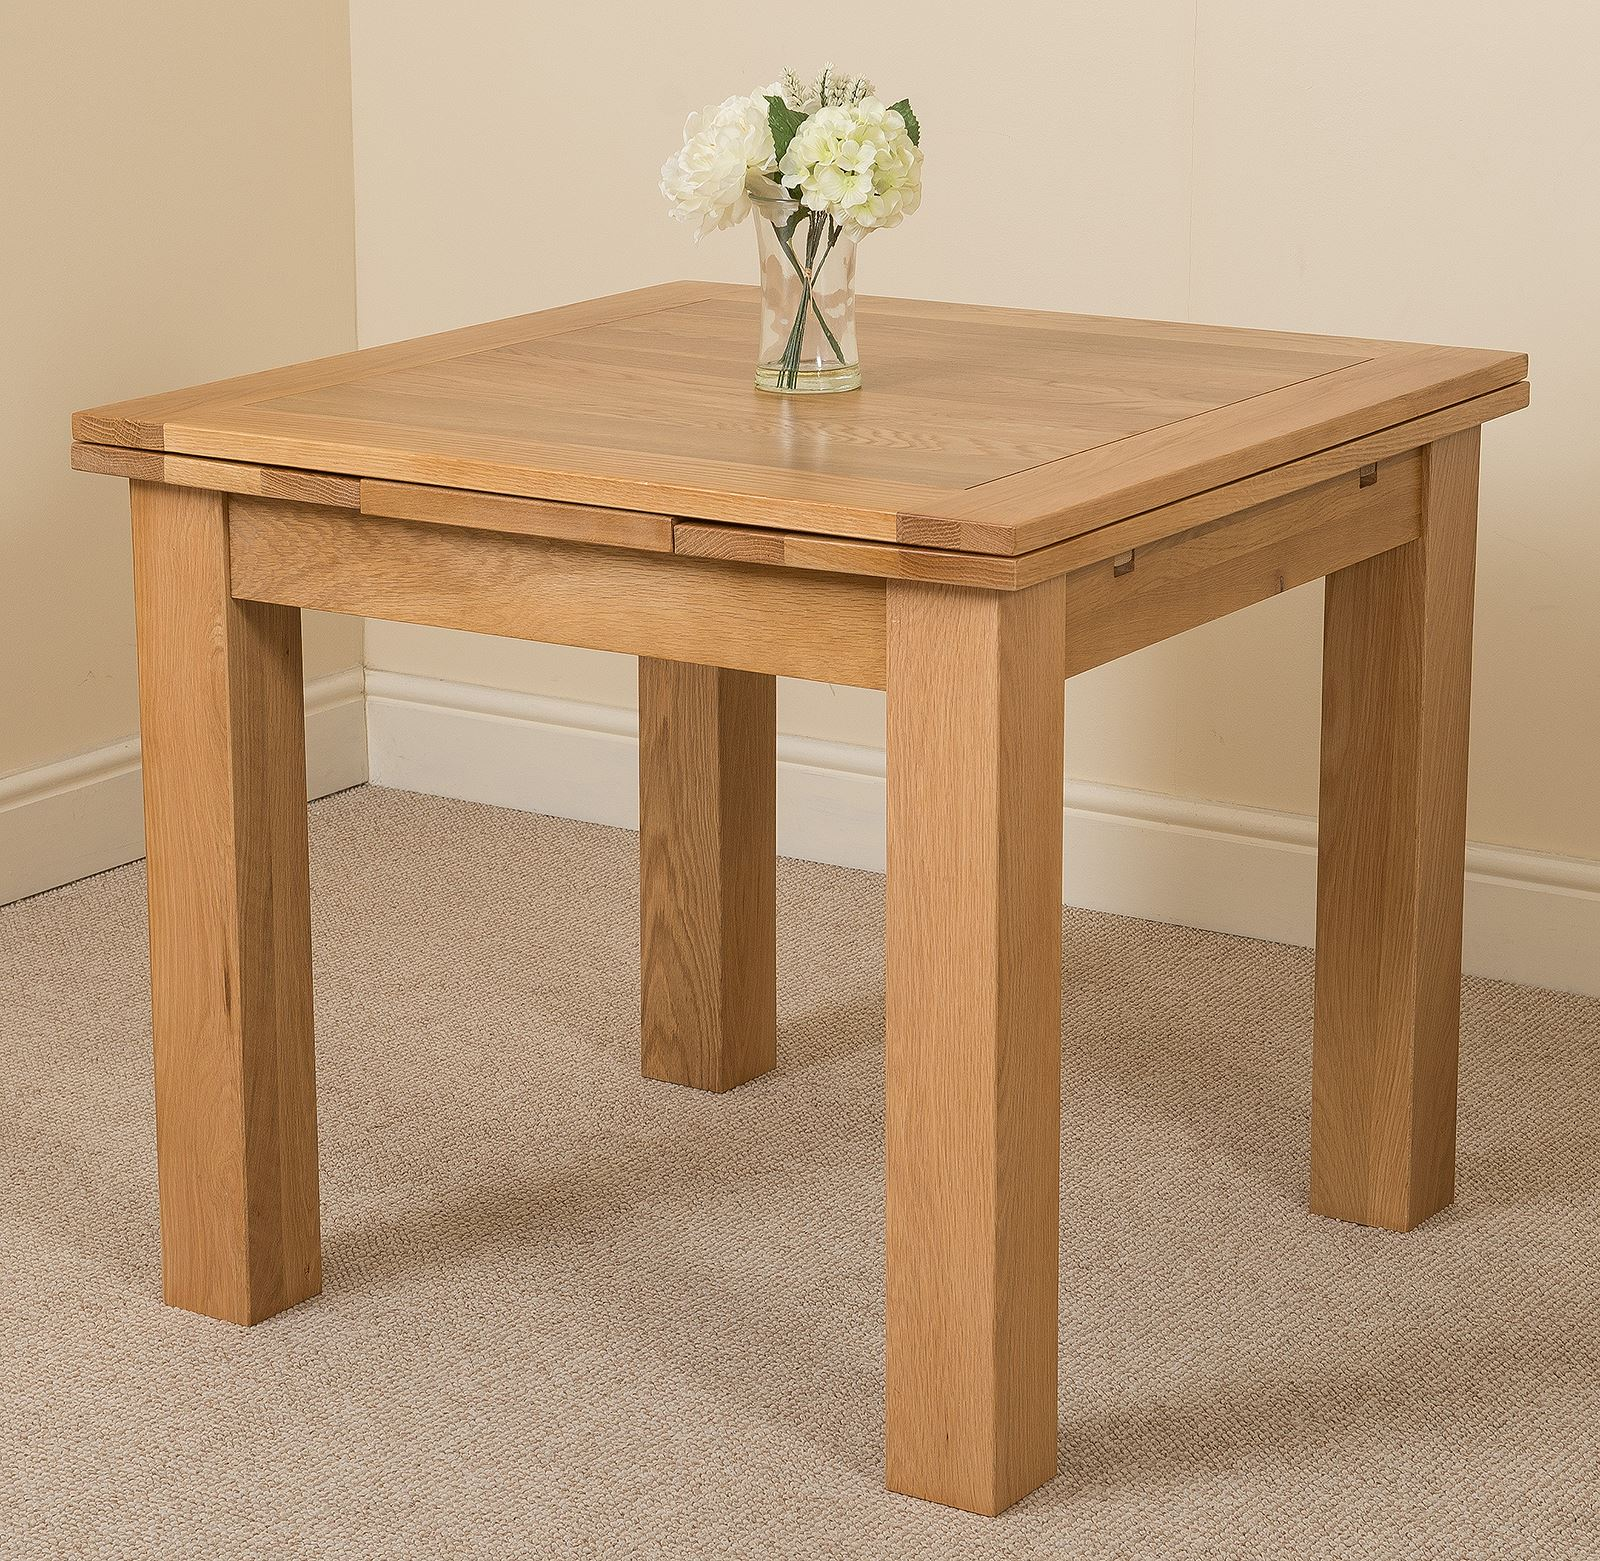 Oak Dining Room Furniture: Richmond Solid Oak Wood Small 90